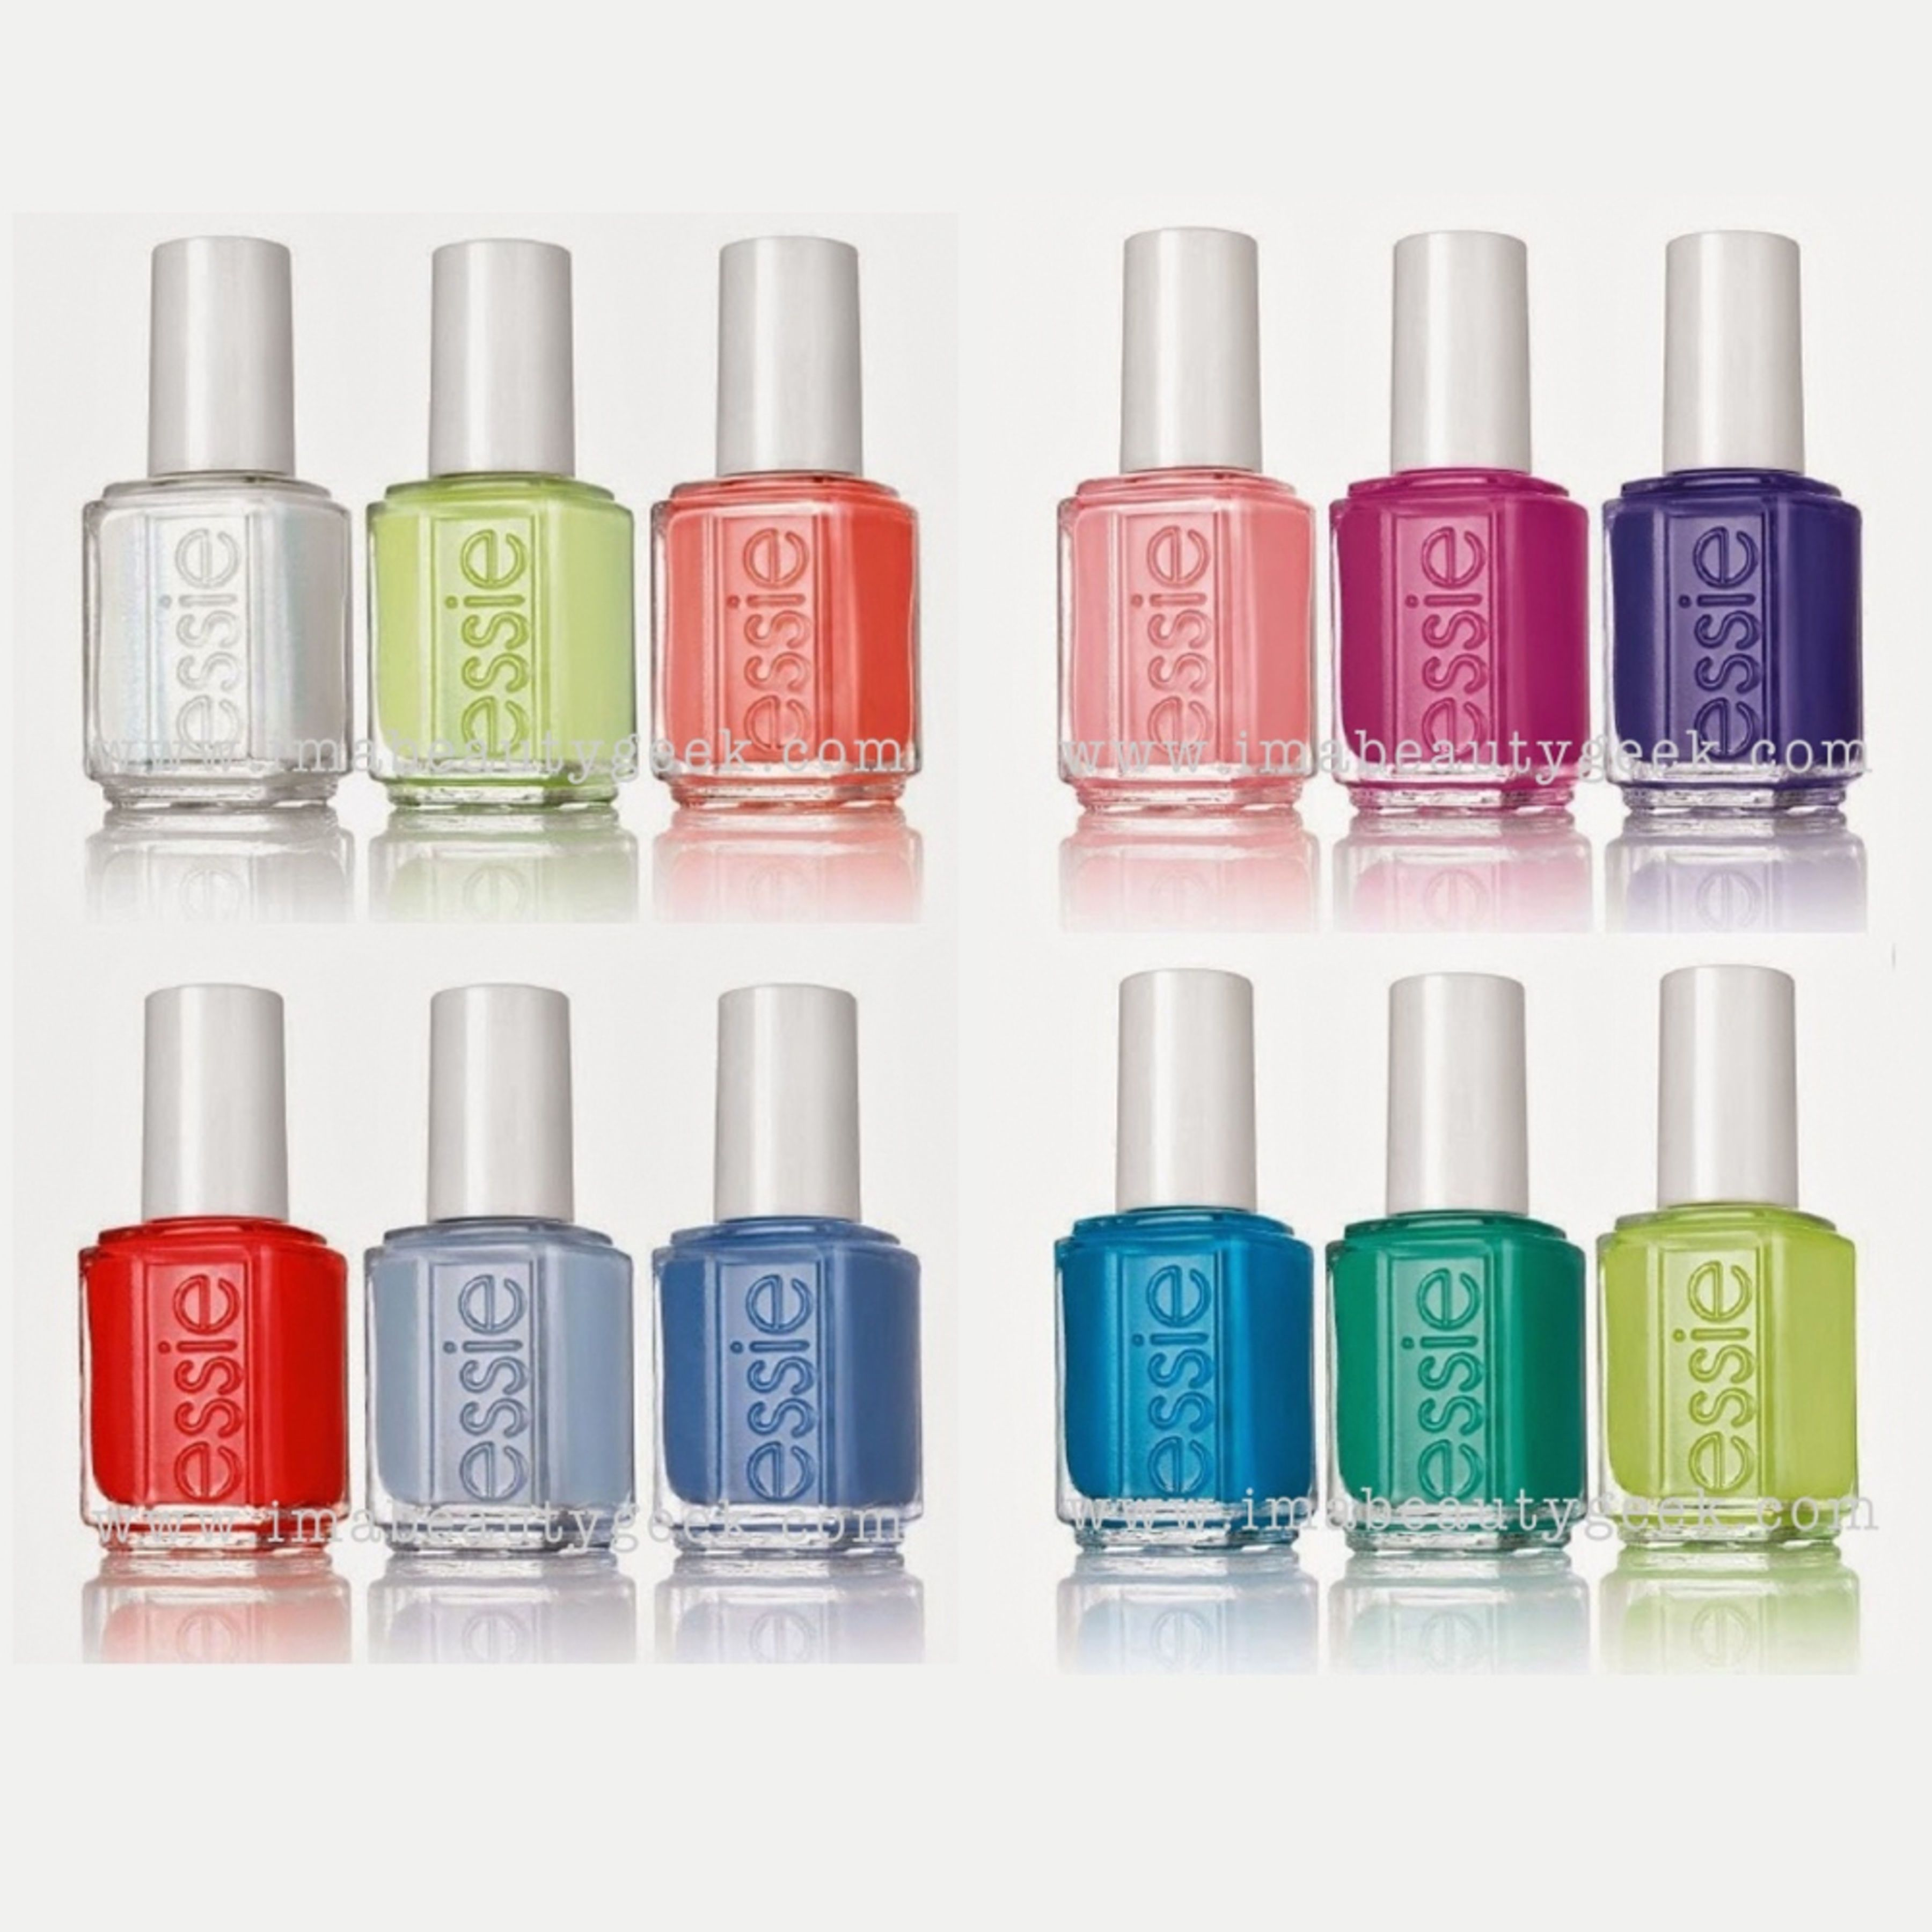 ESSIE NEONS 2015 AND ESSIE SUMMER 2015 COLLECTION SHOTS - YOUR FIRST ...